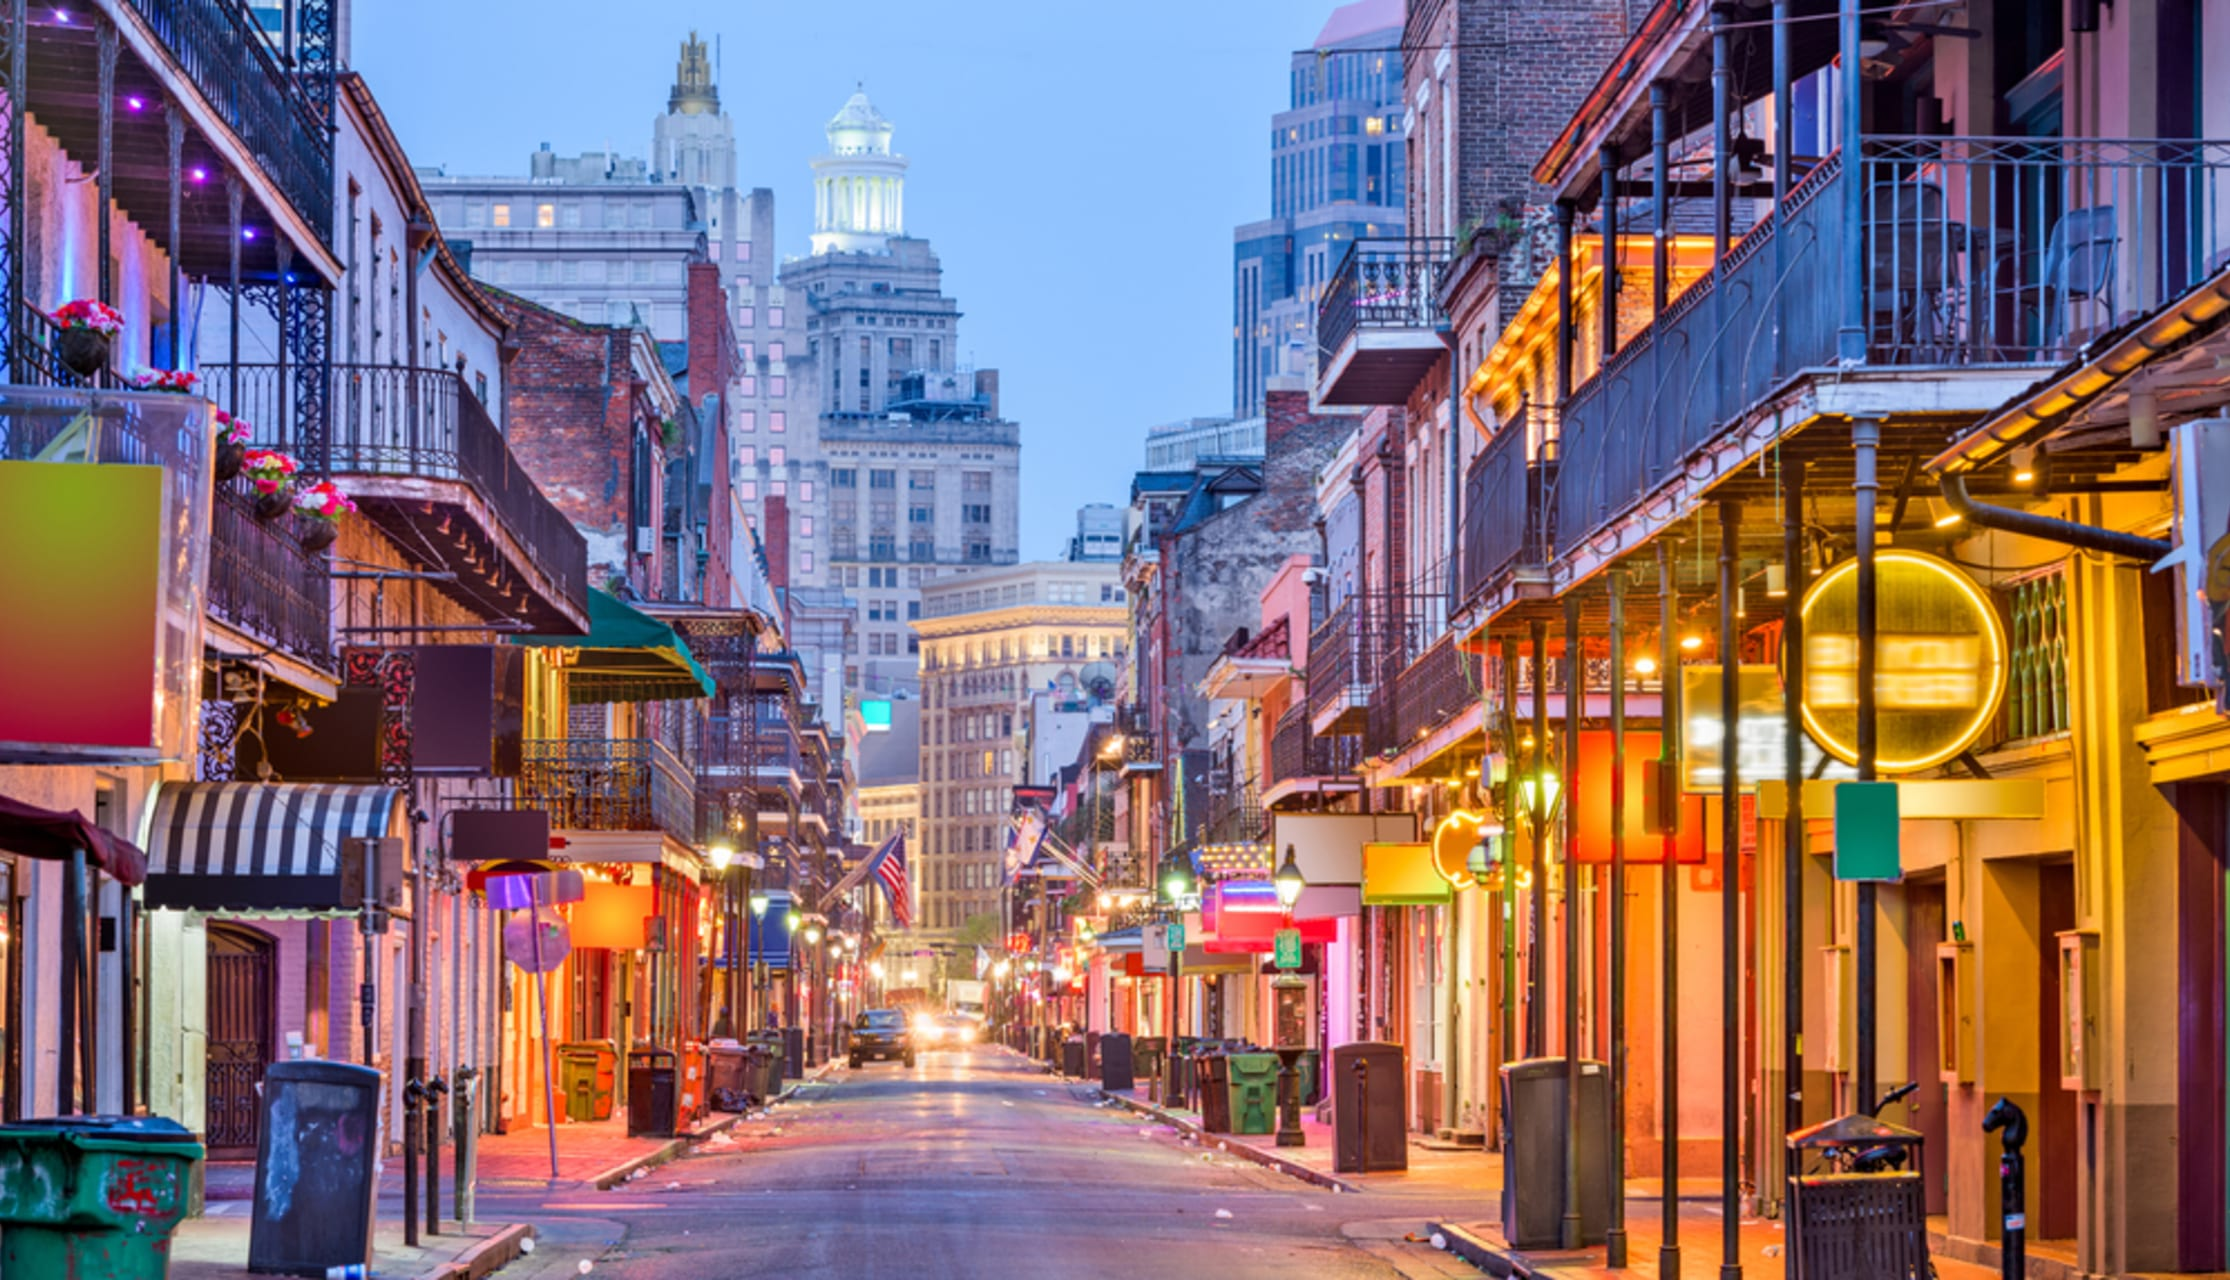 New Orleans - Neighborhood Walks & Lagniappe: Getting to Know the Tour Guide